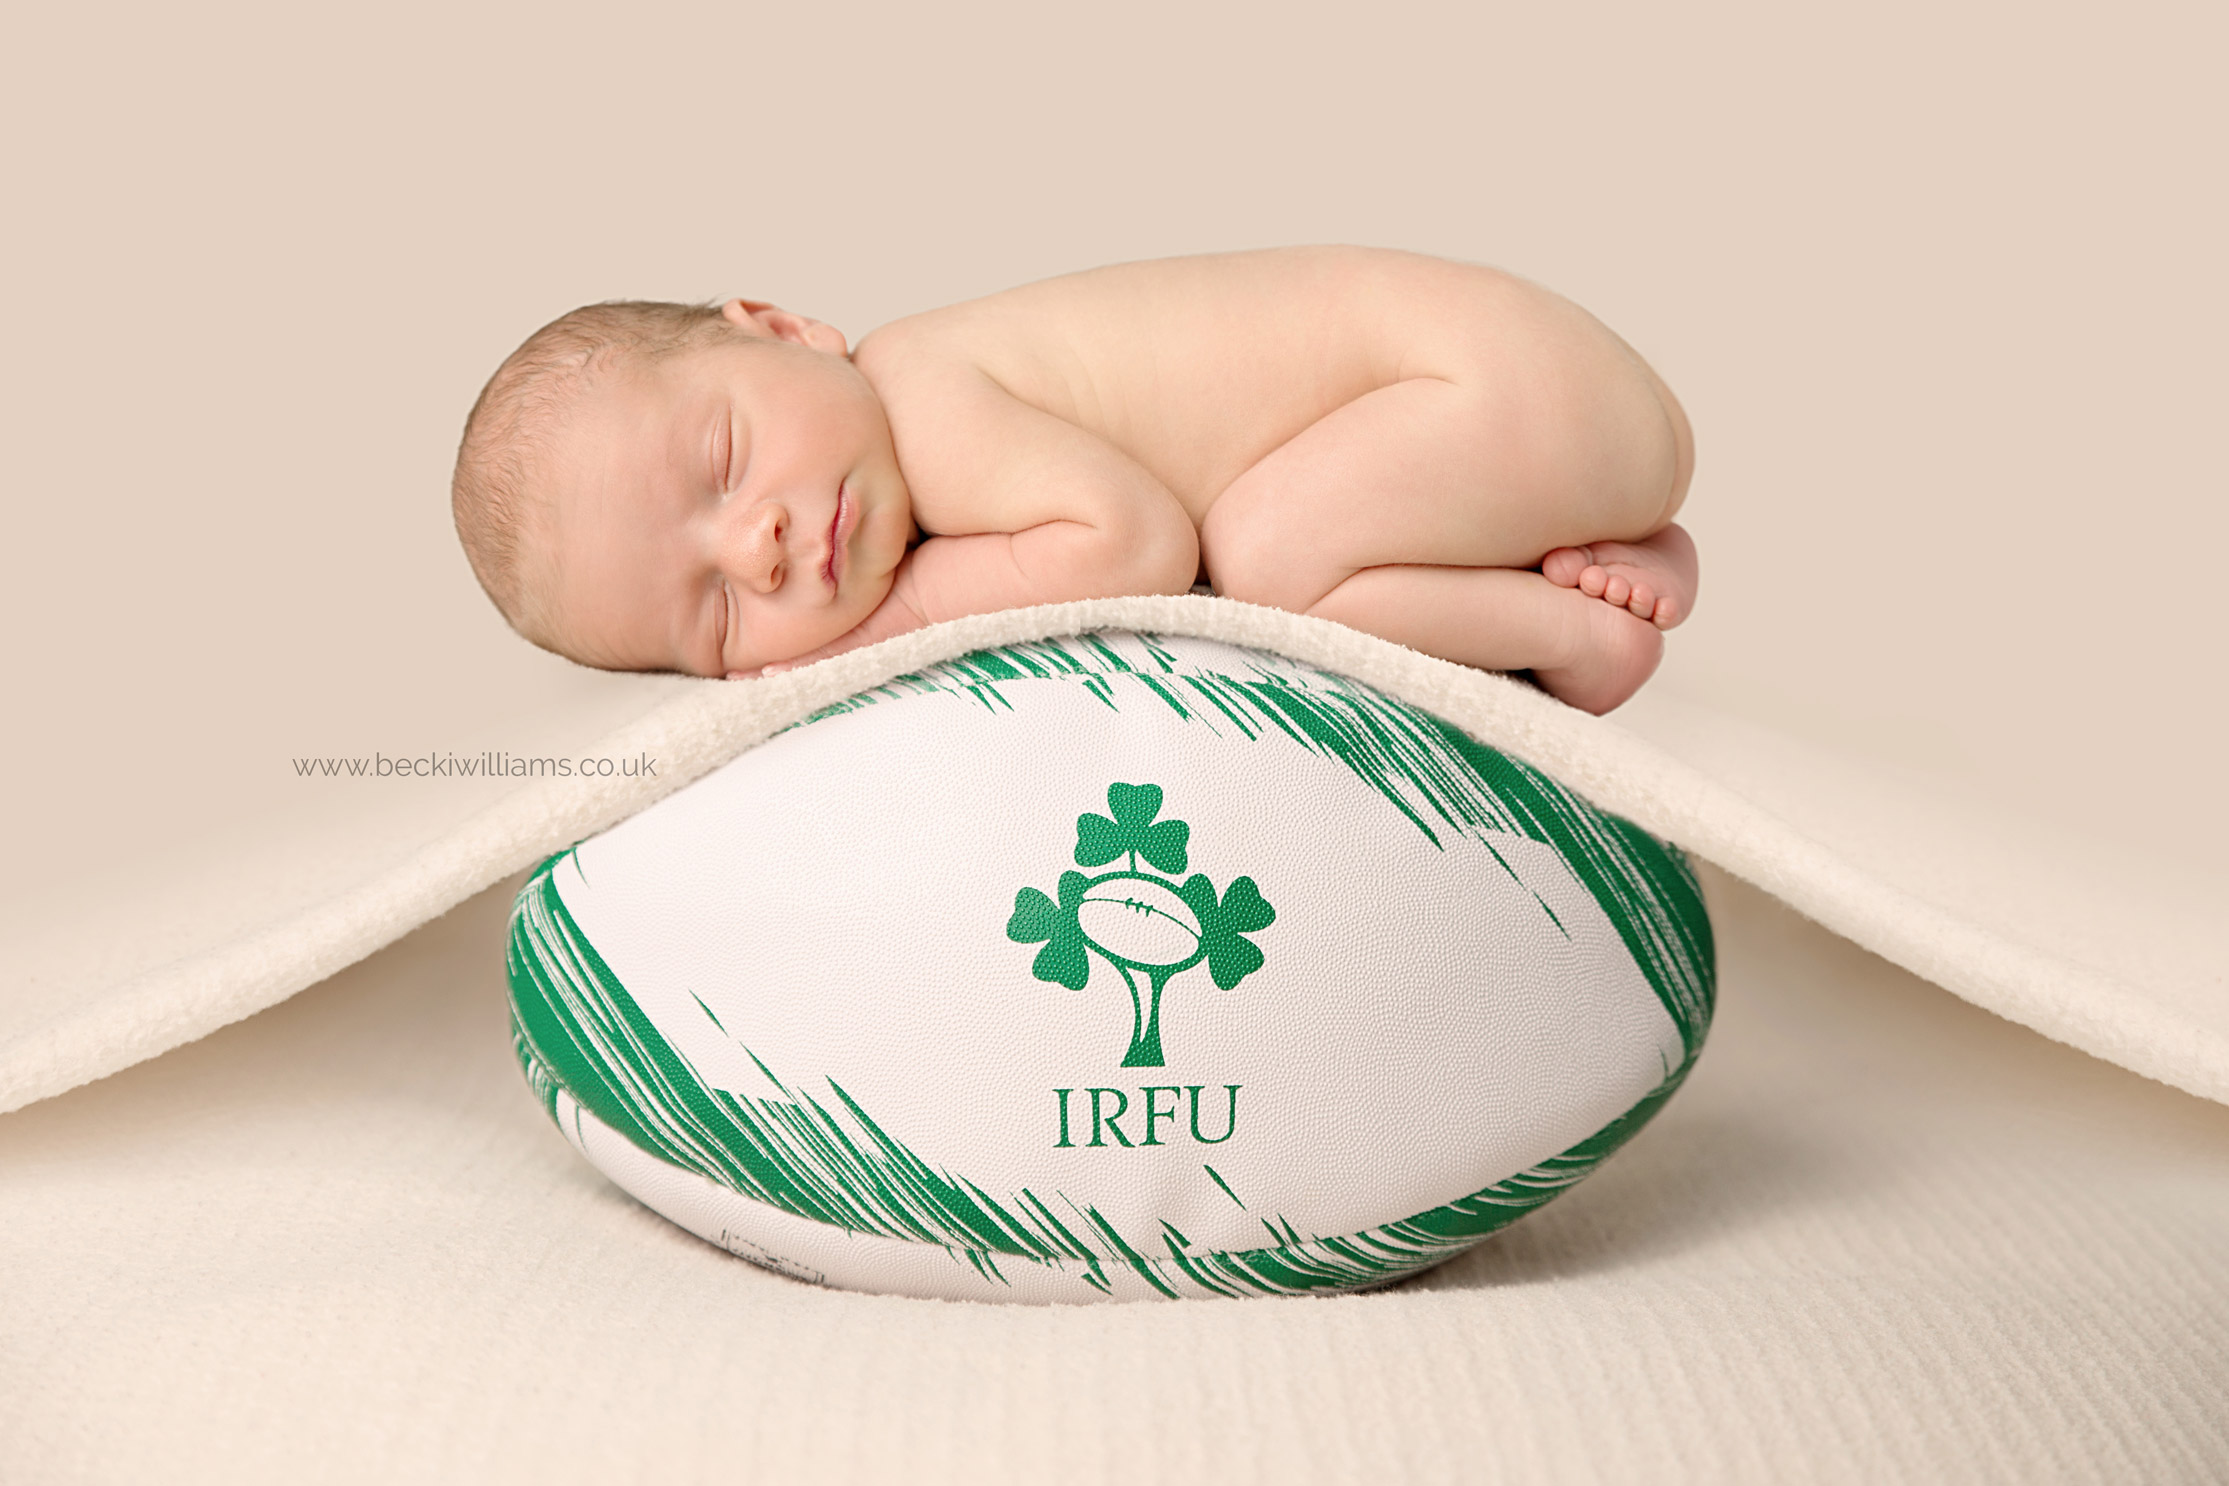 Newborn Baby Photoshoot - newborn laying on Irish Rugby Ball - This image is a composite